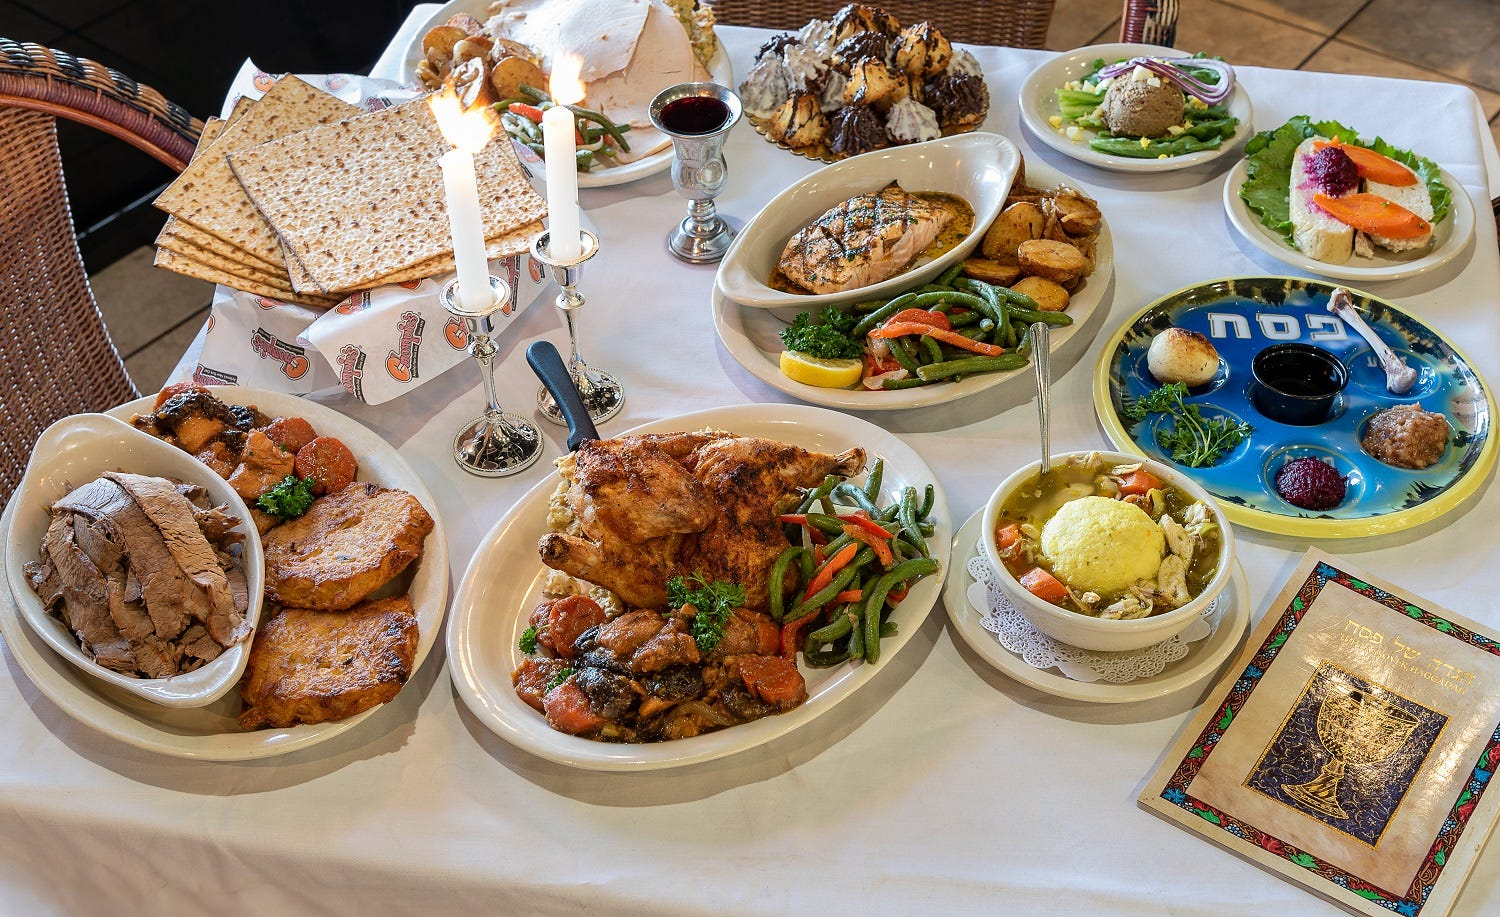 Where to get a Seder dinner during Passover in Phoenix